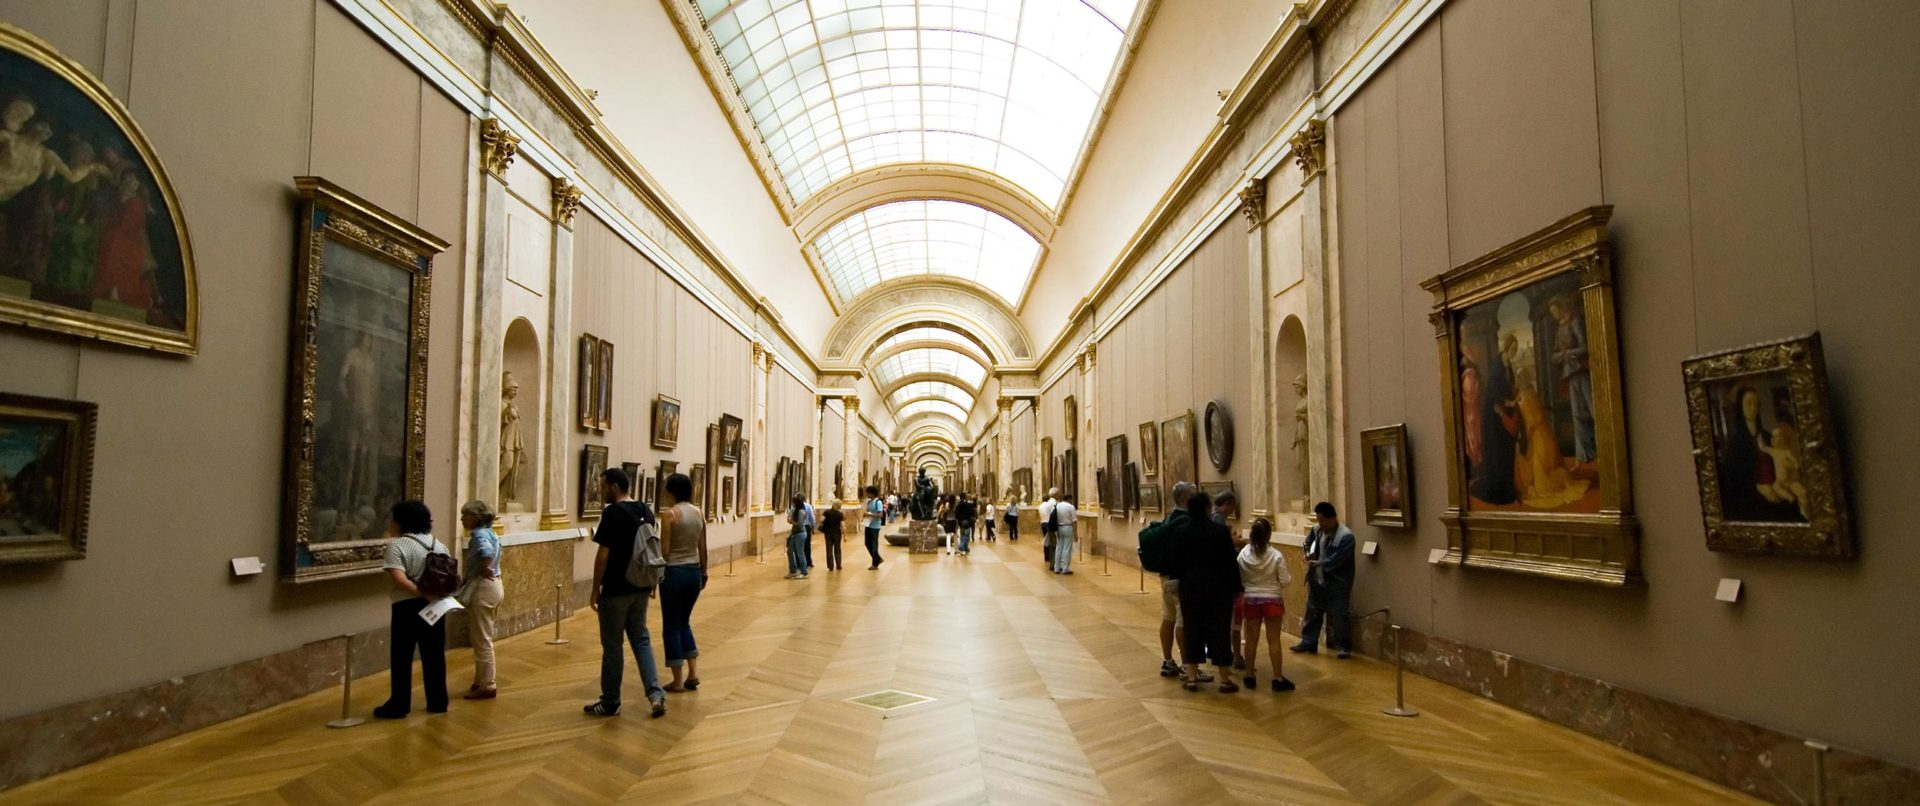 louvre-treasure-hunt-private-guided-tour